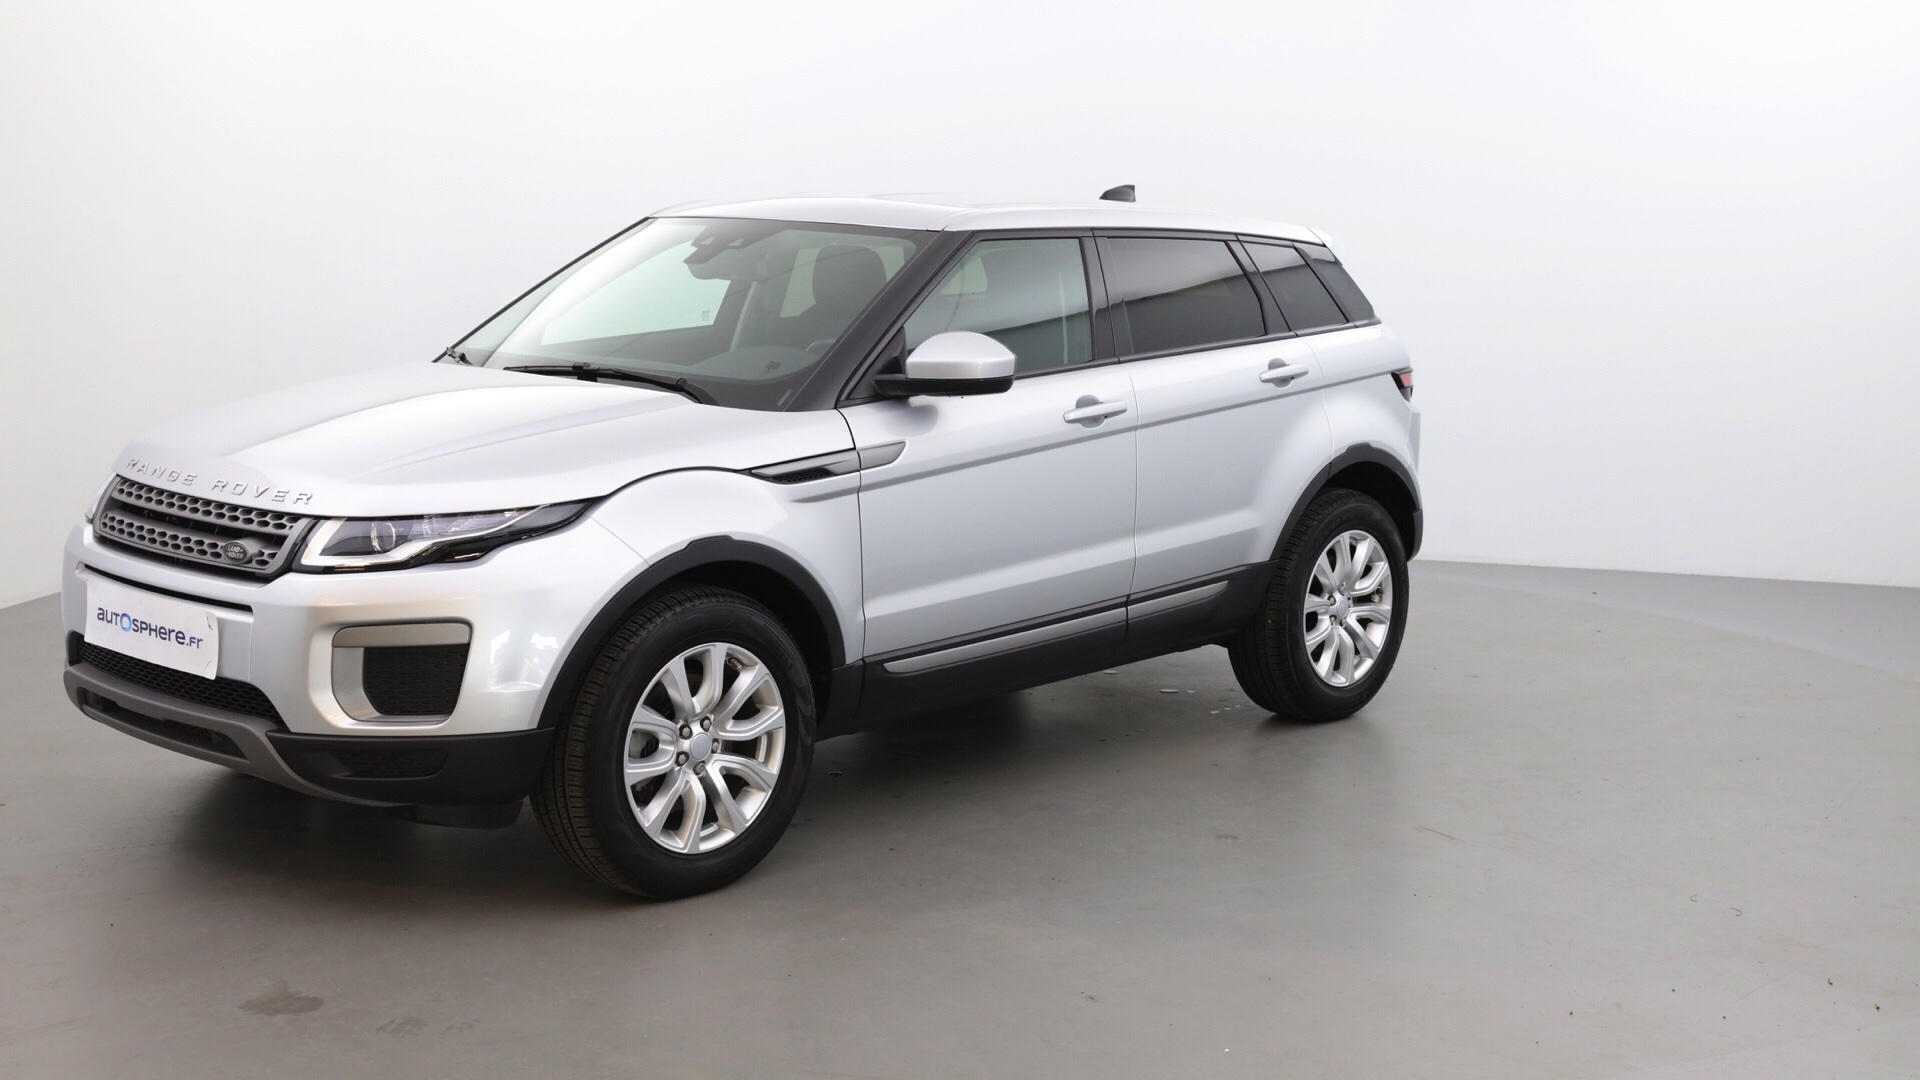 LAND-ROVER EVOQUE 2.0 TD4 150 PURE BVA MARK IV - Photo 1